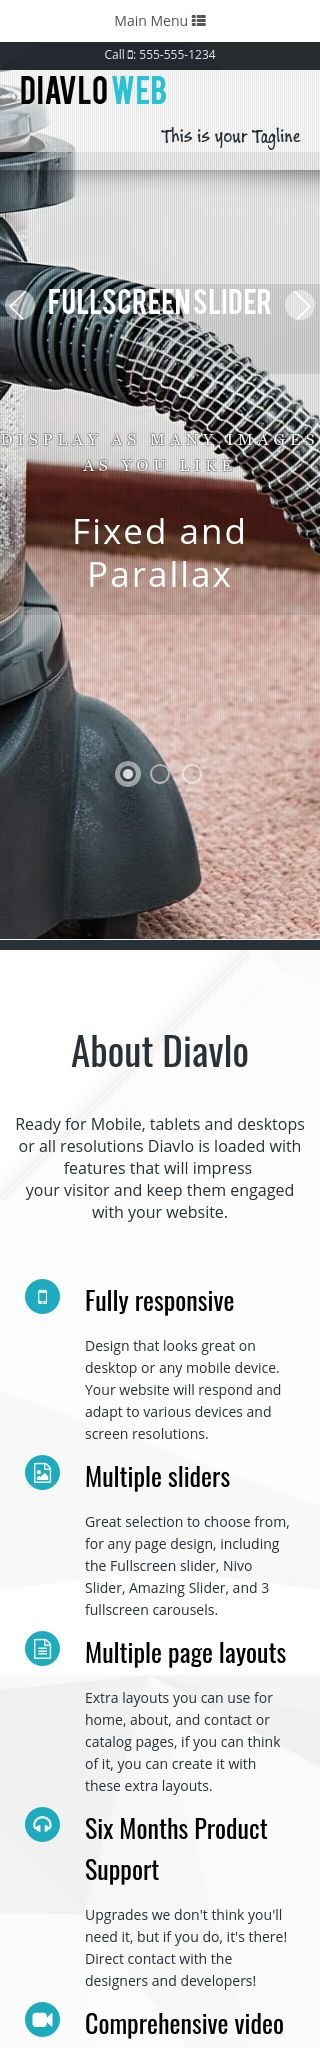 Mobile: Janitorial Web Template